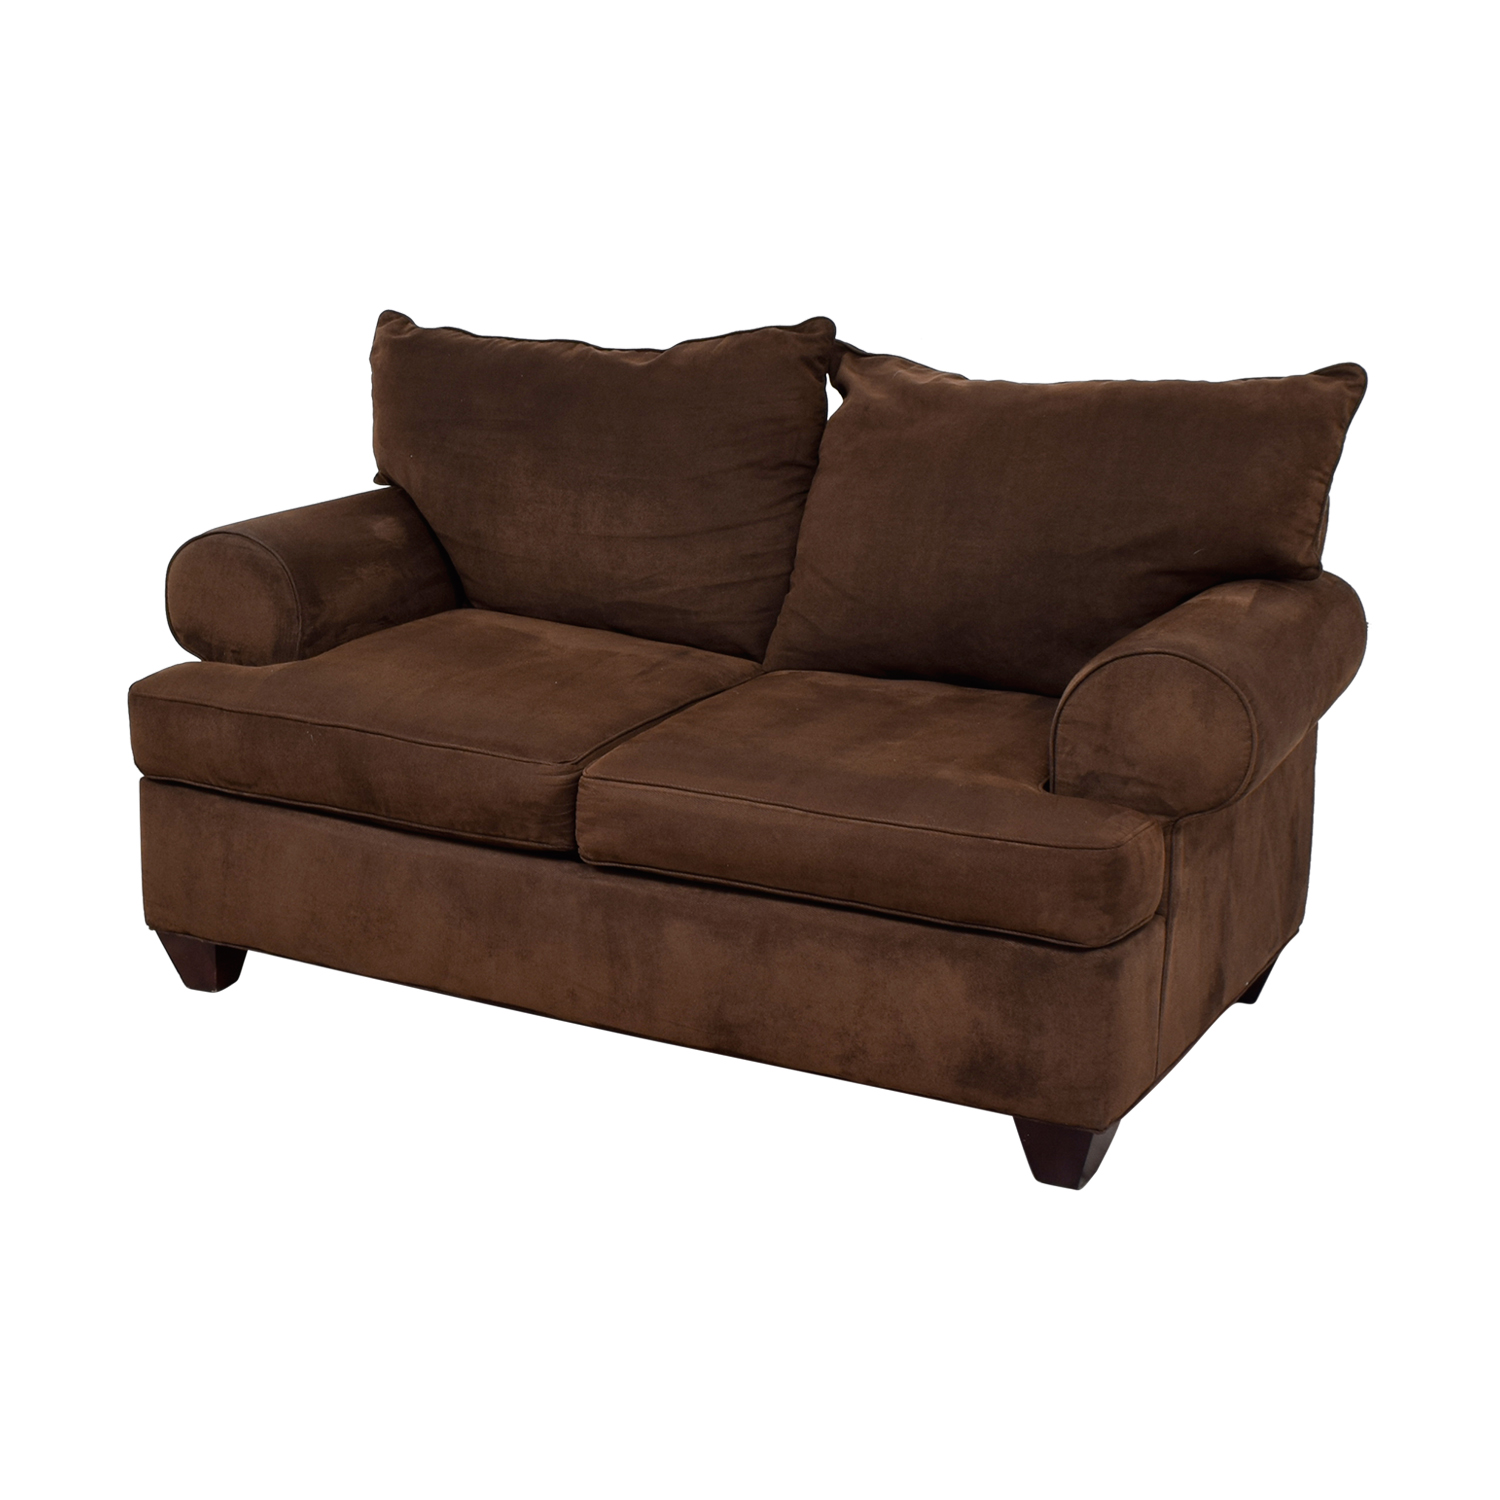 buy Raymour & Flanigan Brown Two-Cushion Loveseat Raymour & Flanigan Loveseats